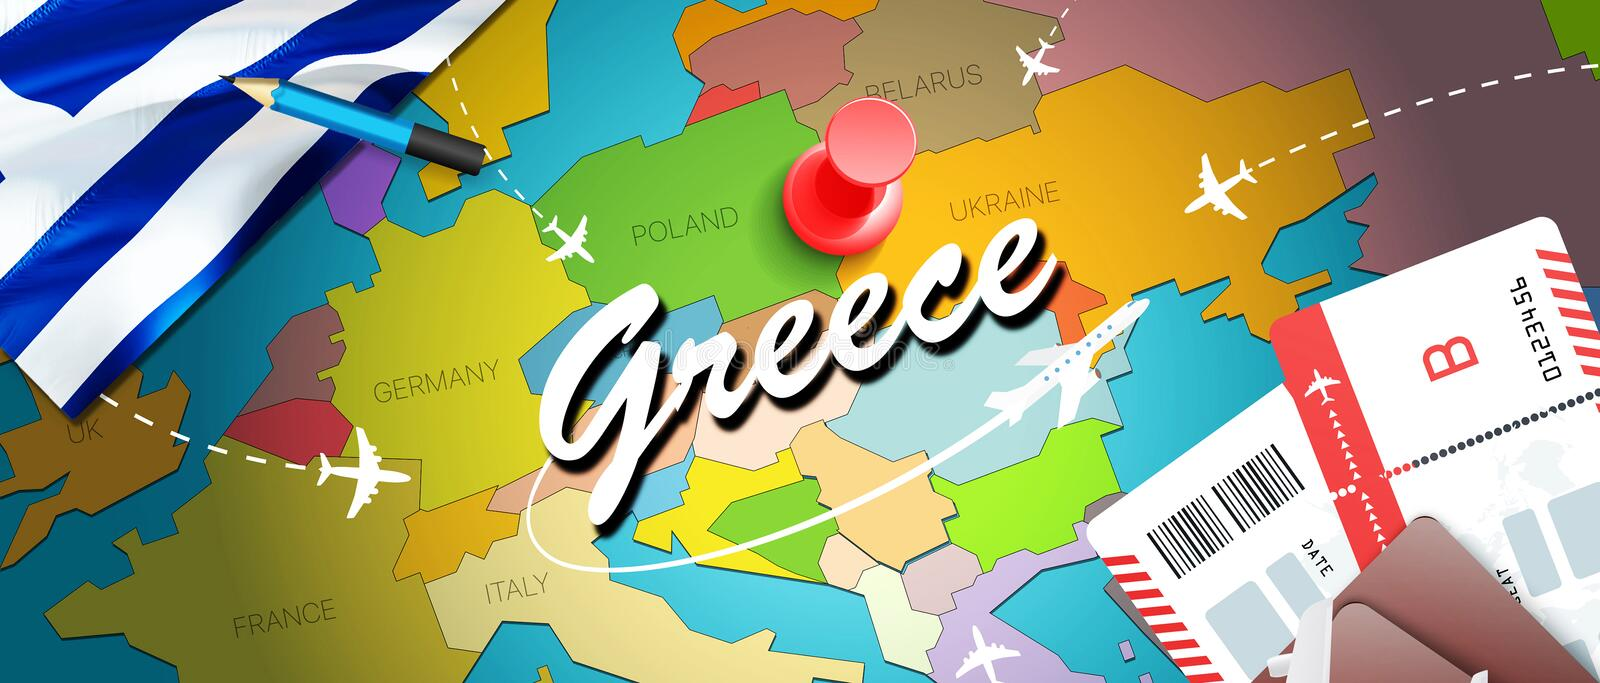 Greece travel concept map background with planes, tickets. Visit Greece travel and tourism destination concept. Greece flag on map royalty free illustration